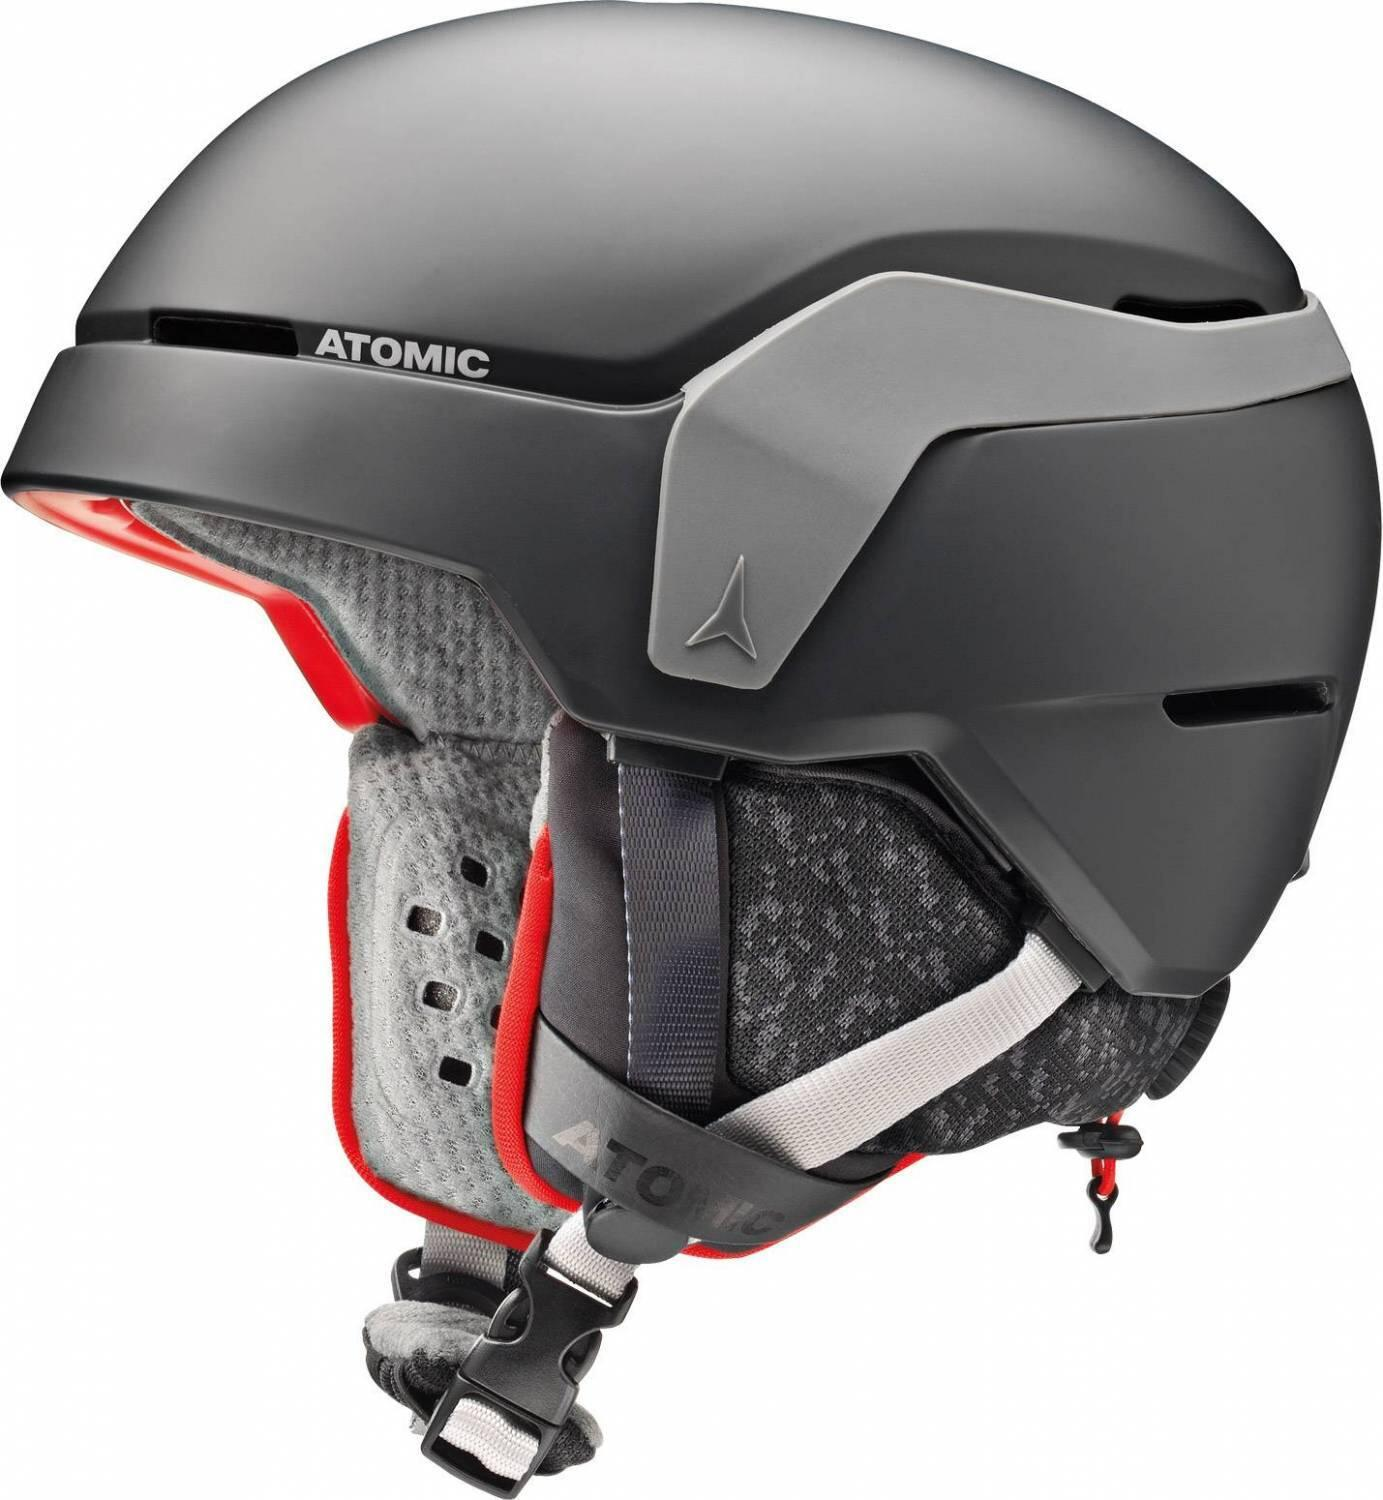 atomic-count-junior-skihelm-gr-ouml-szlig-e-51-55-cm-black-